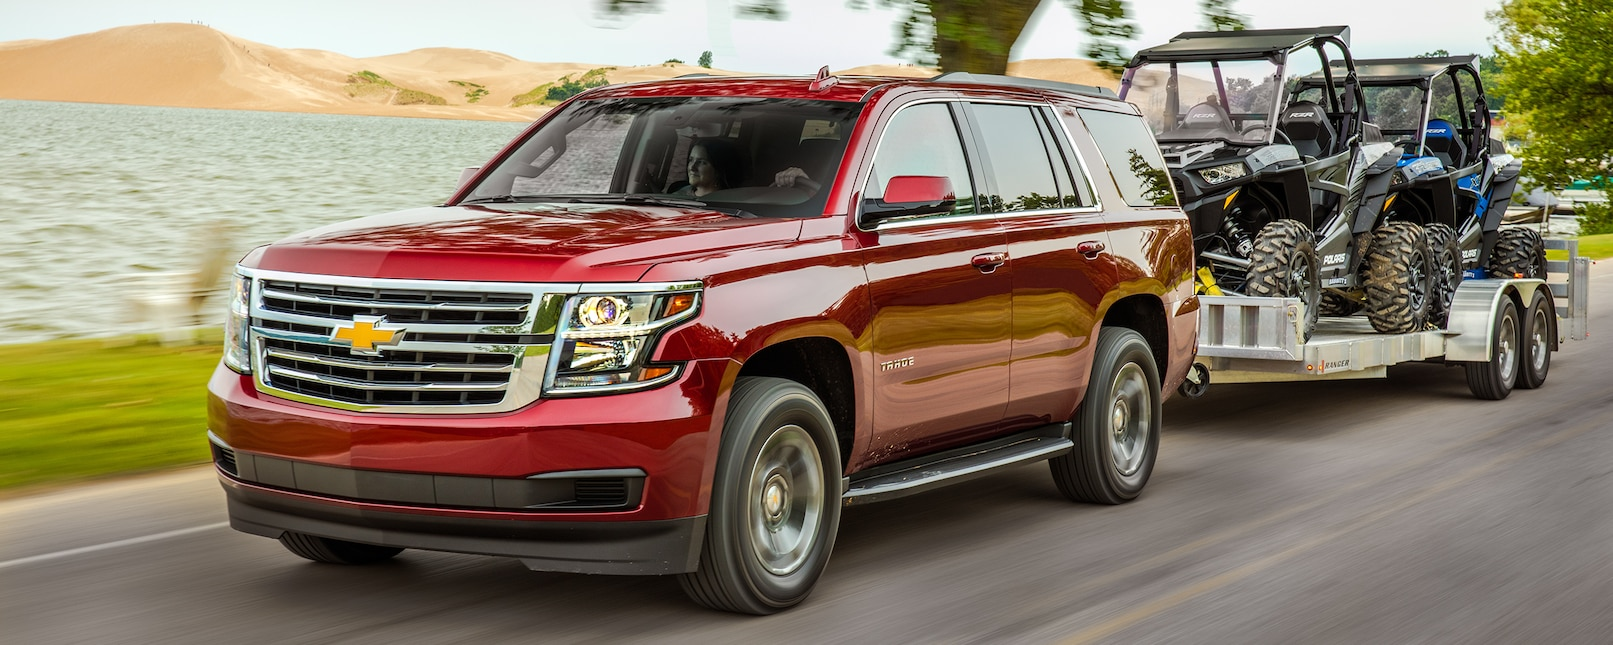 2019 Chevrolet Tahoe Financing near Orland Park, IL